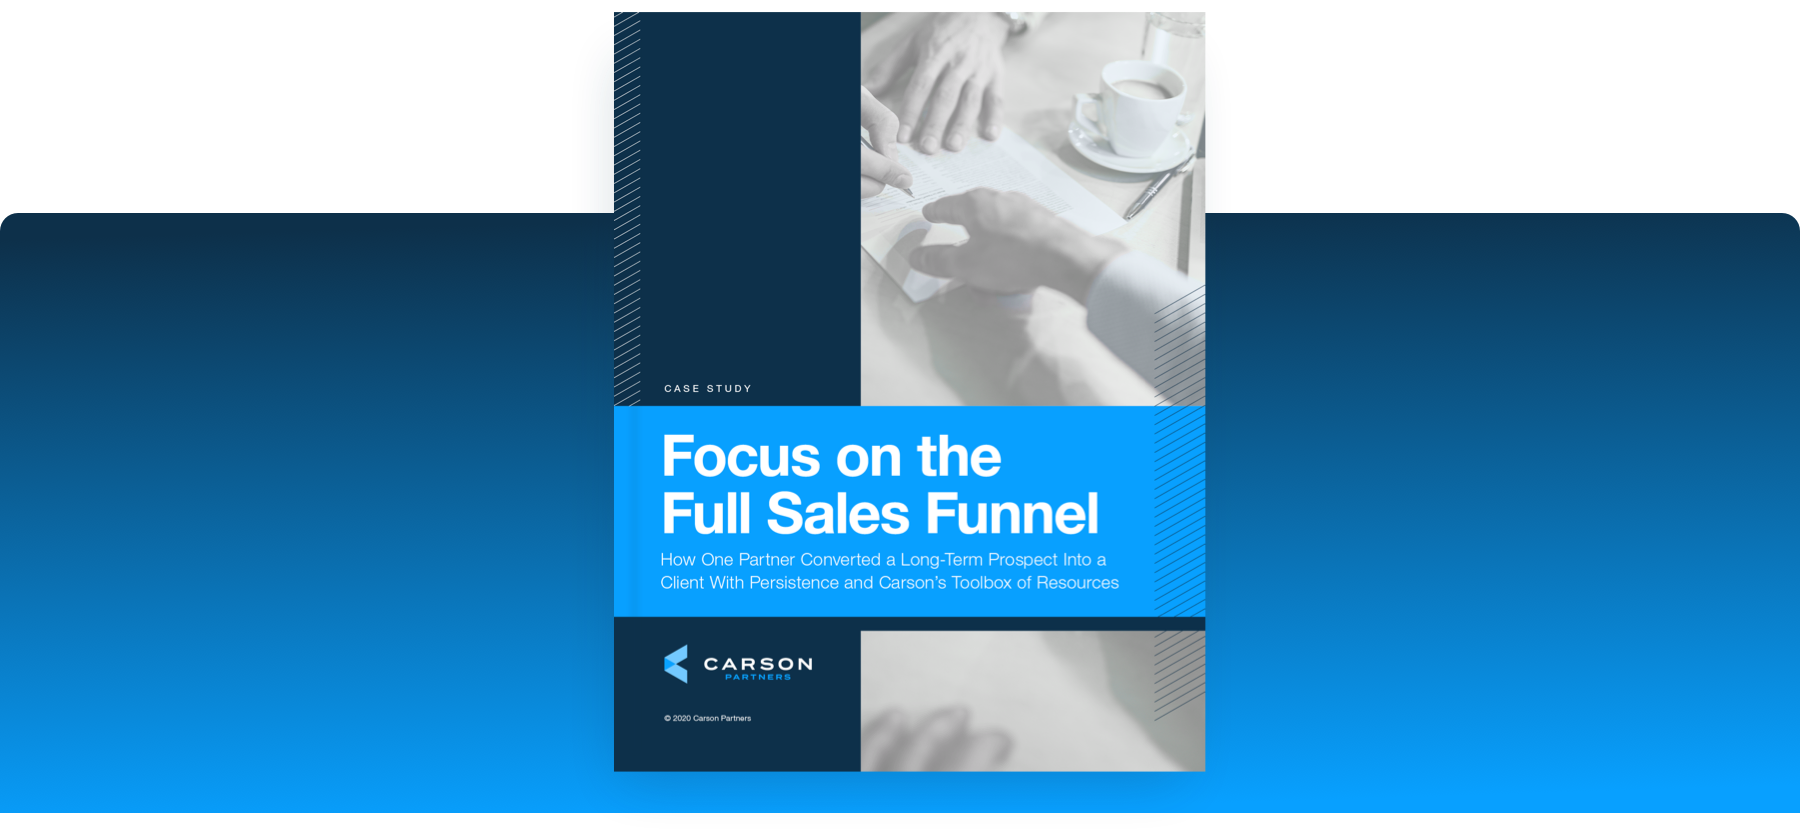 Focus on the Full Sales Funnel